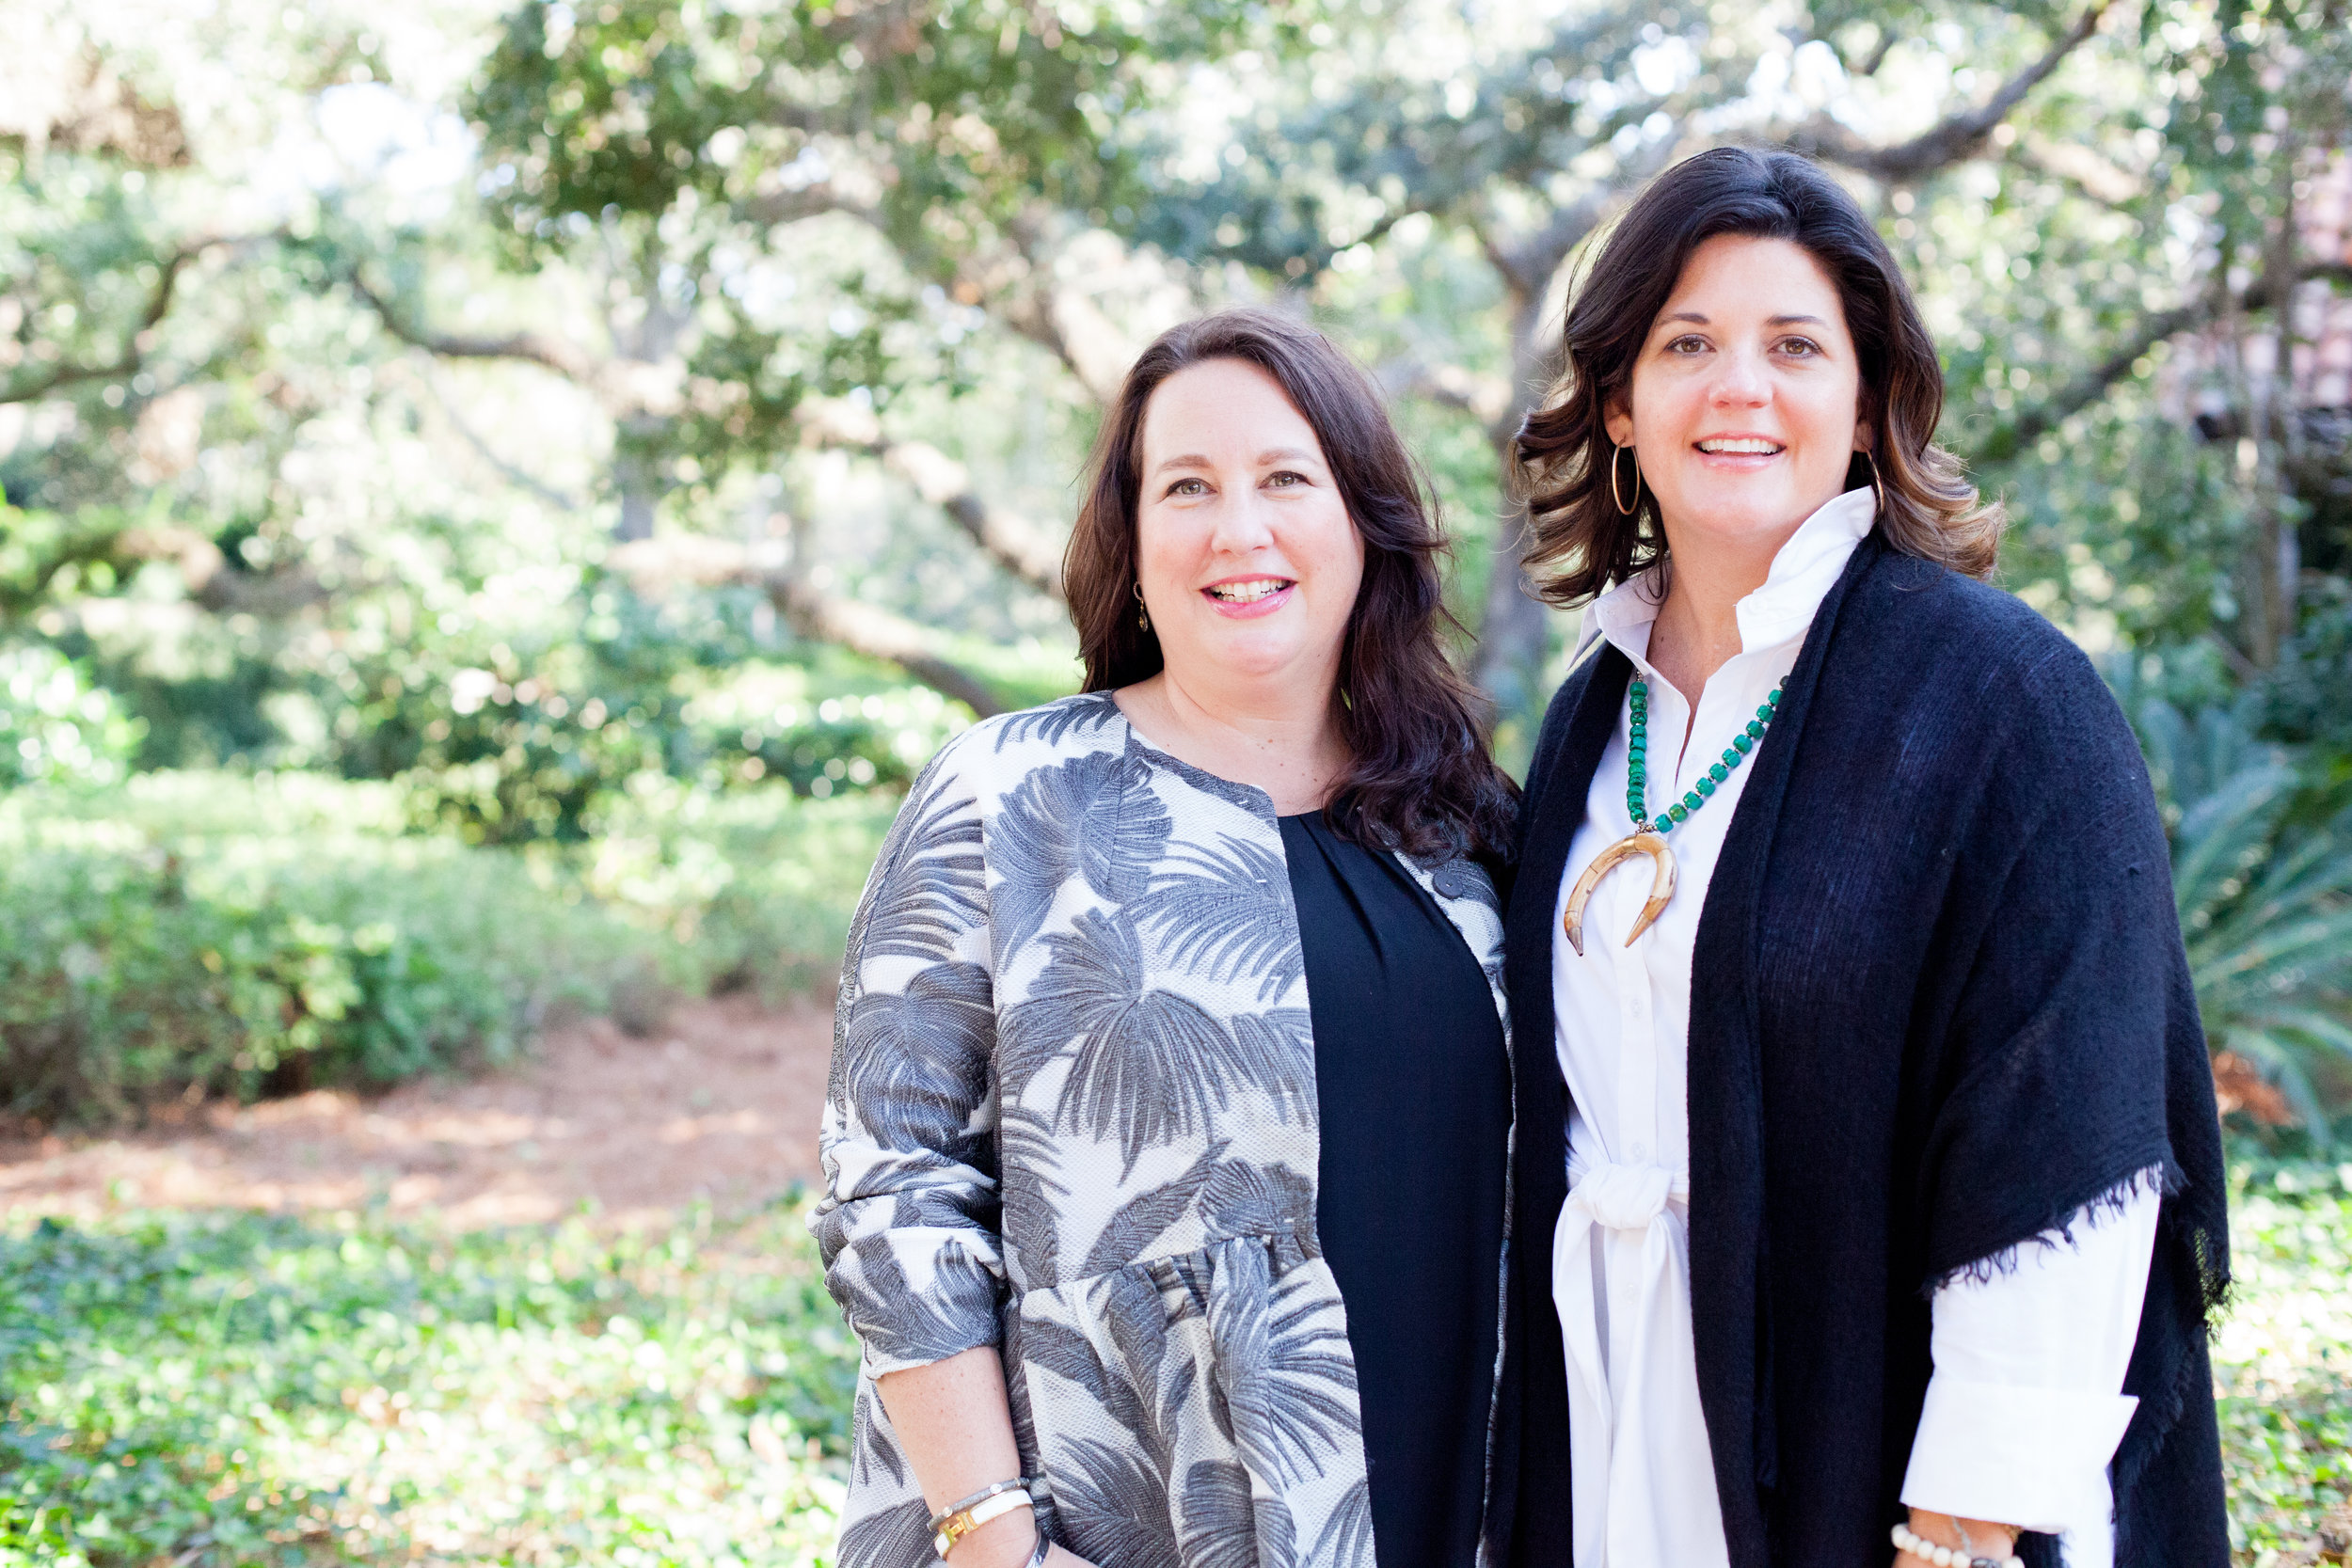 Cheri Leavy & Whitney Long, co-founders of The Southern Coterie